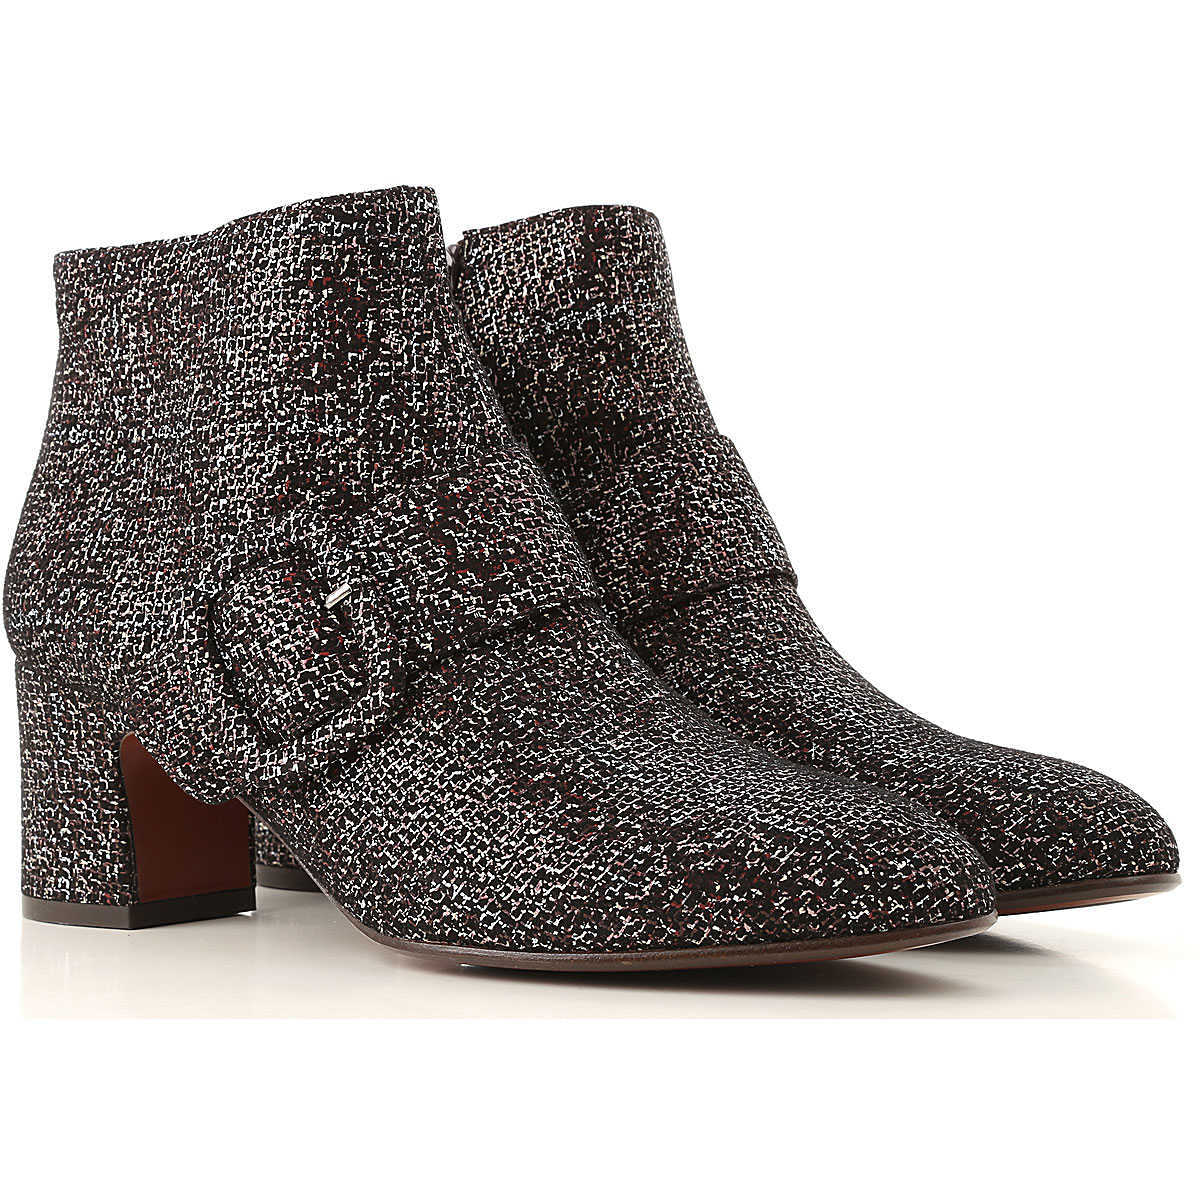 Chie Mihara Boots for Women Booties On Sale in Outlet - GOOFASH